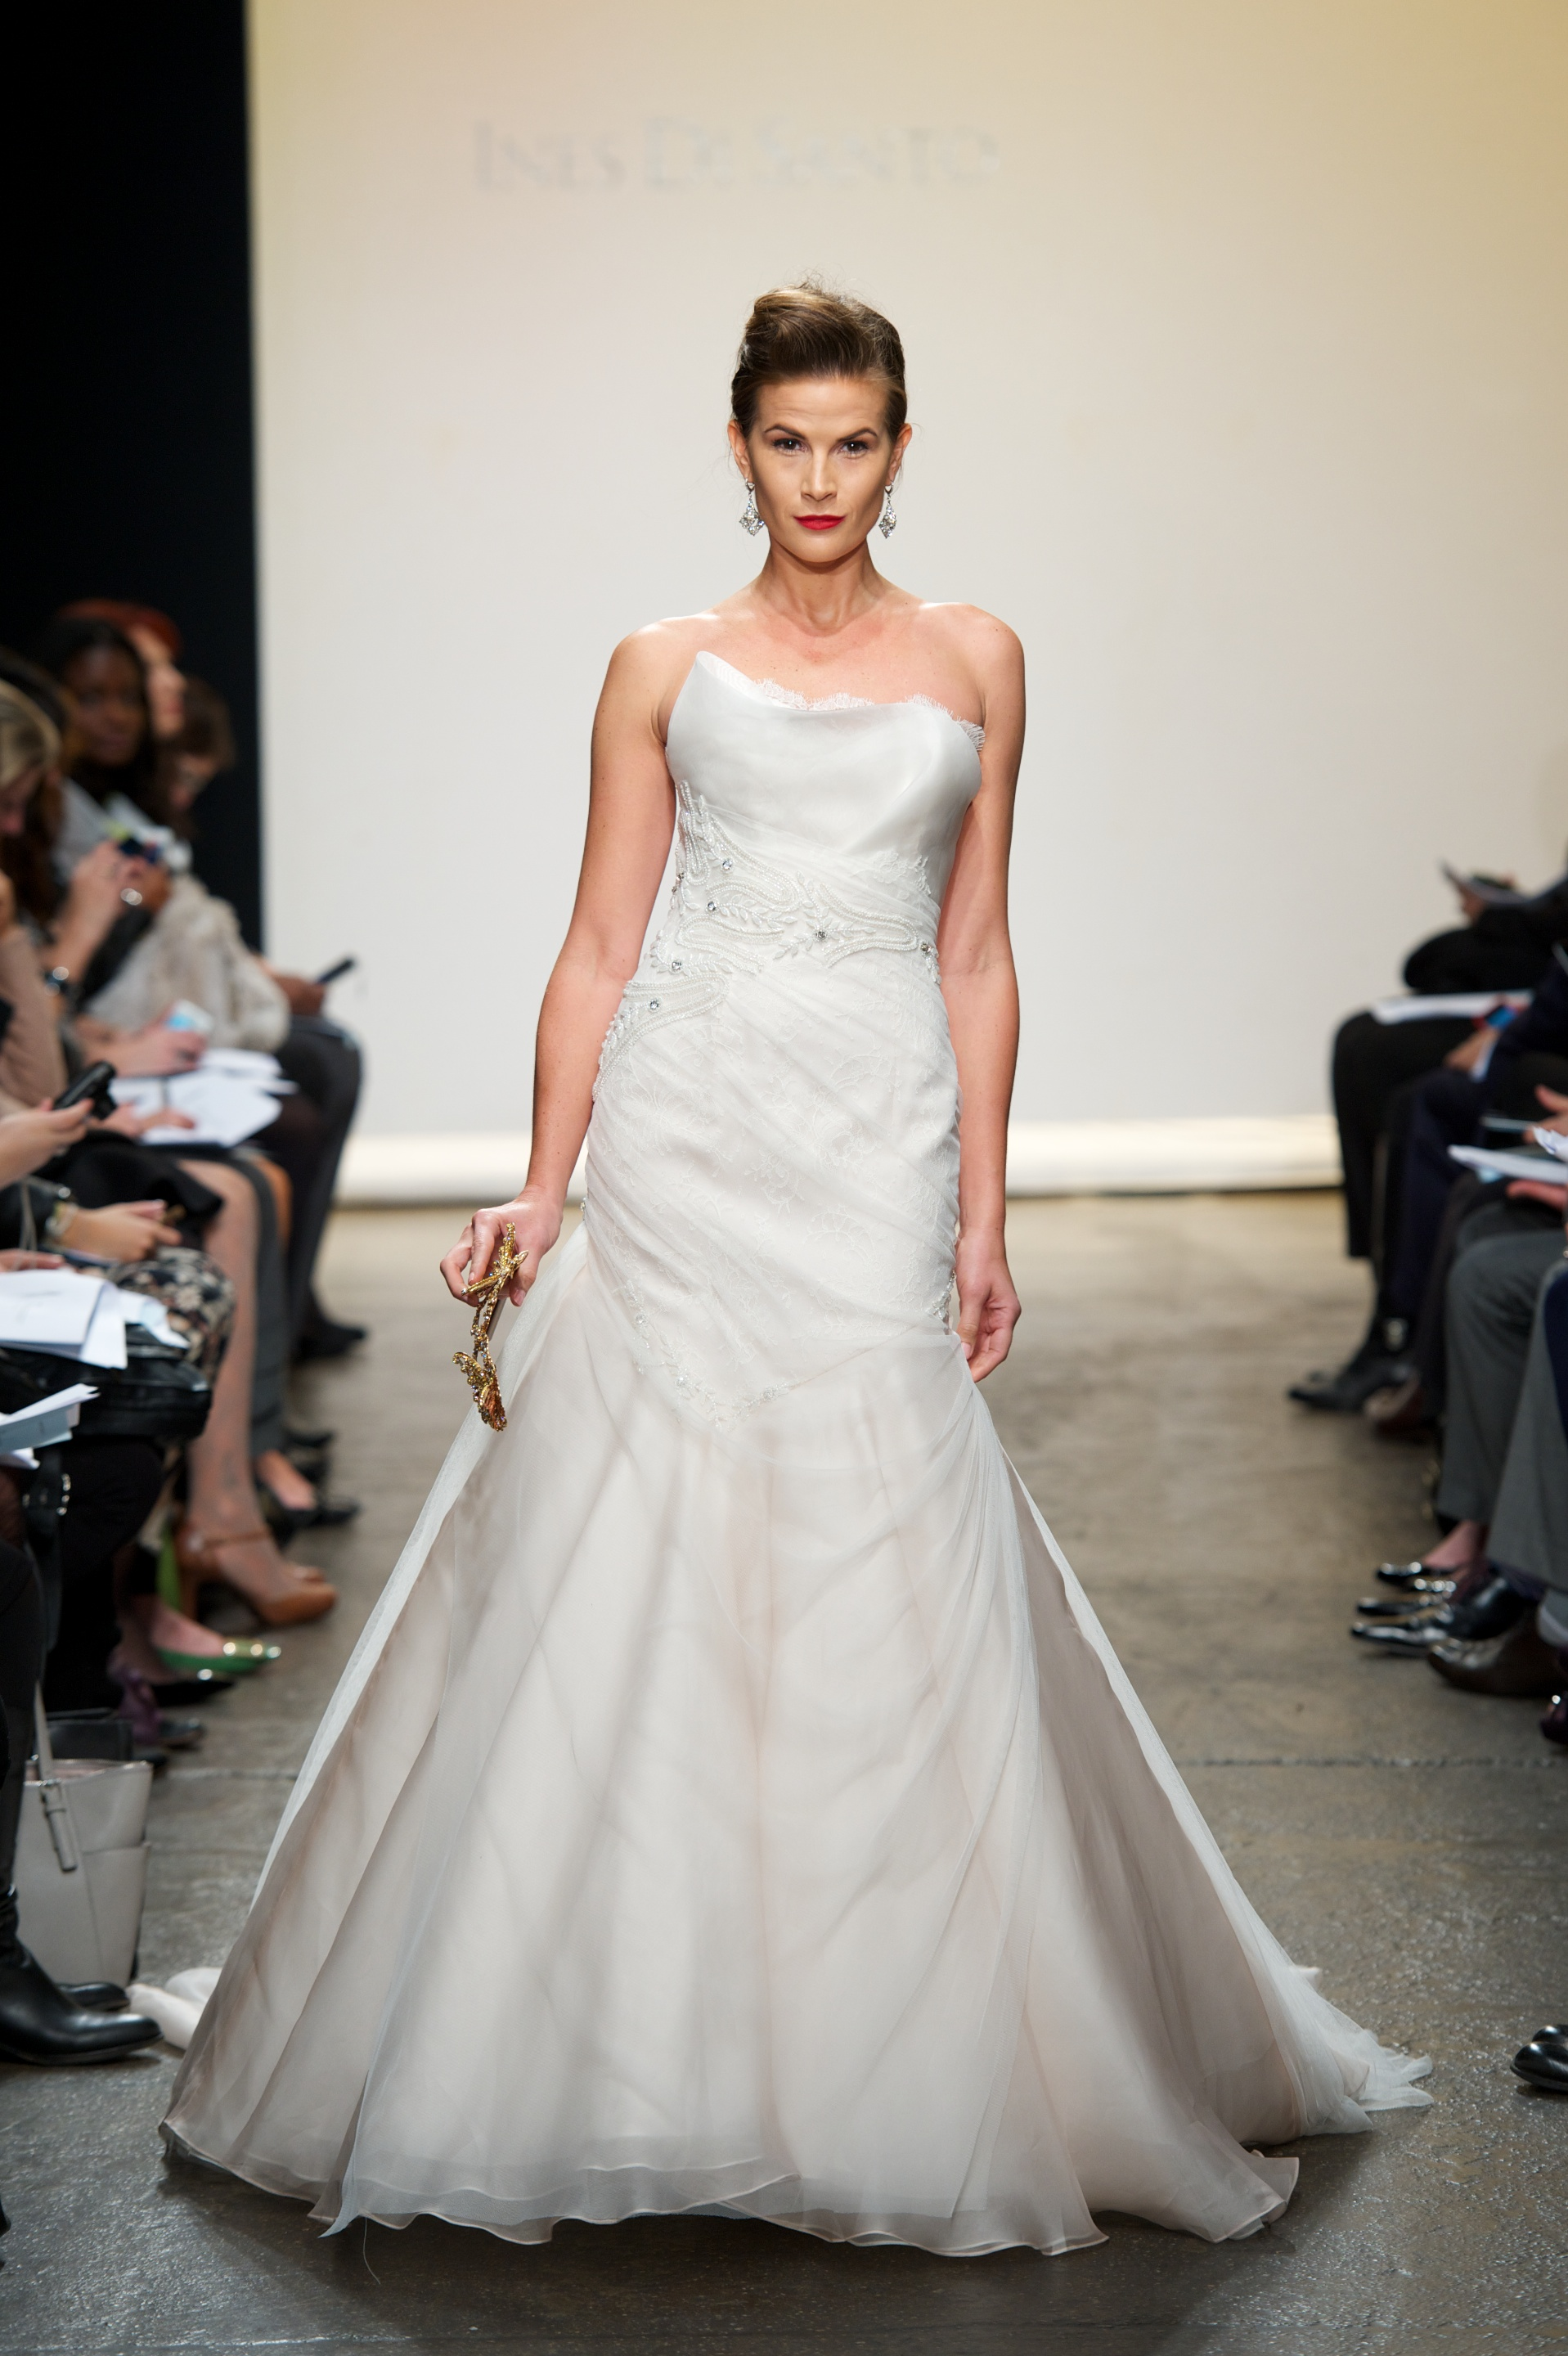 2013 wedding dress by ines di santo florian for Ines di santo wedding dress